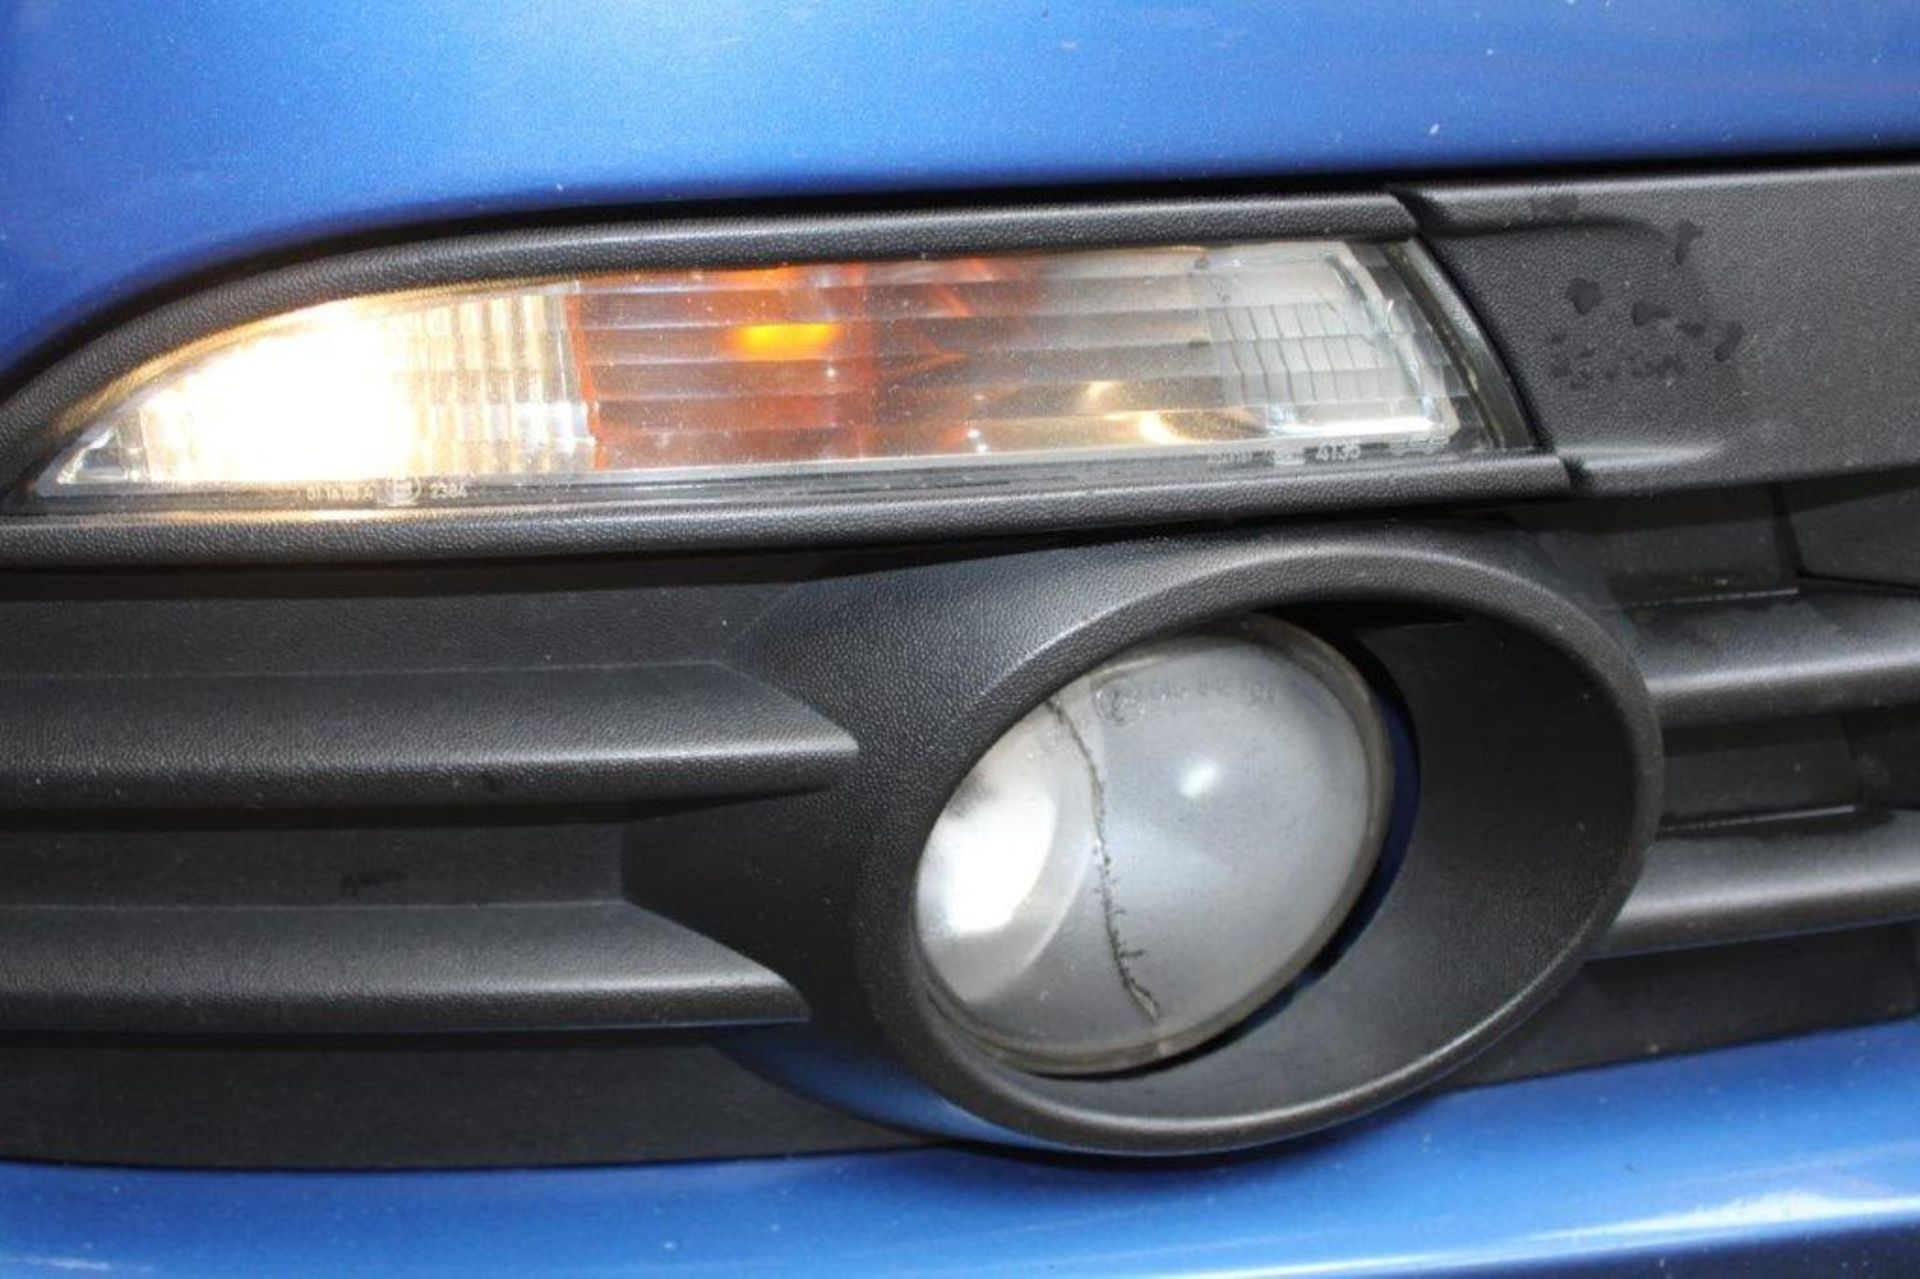 58 08 VW Scirocco GT - Image 14 of 29